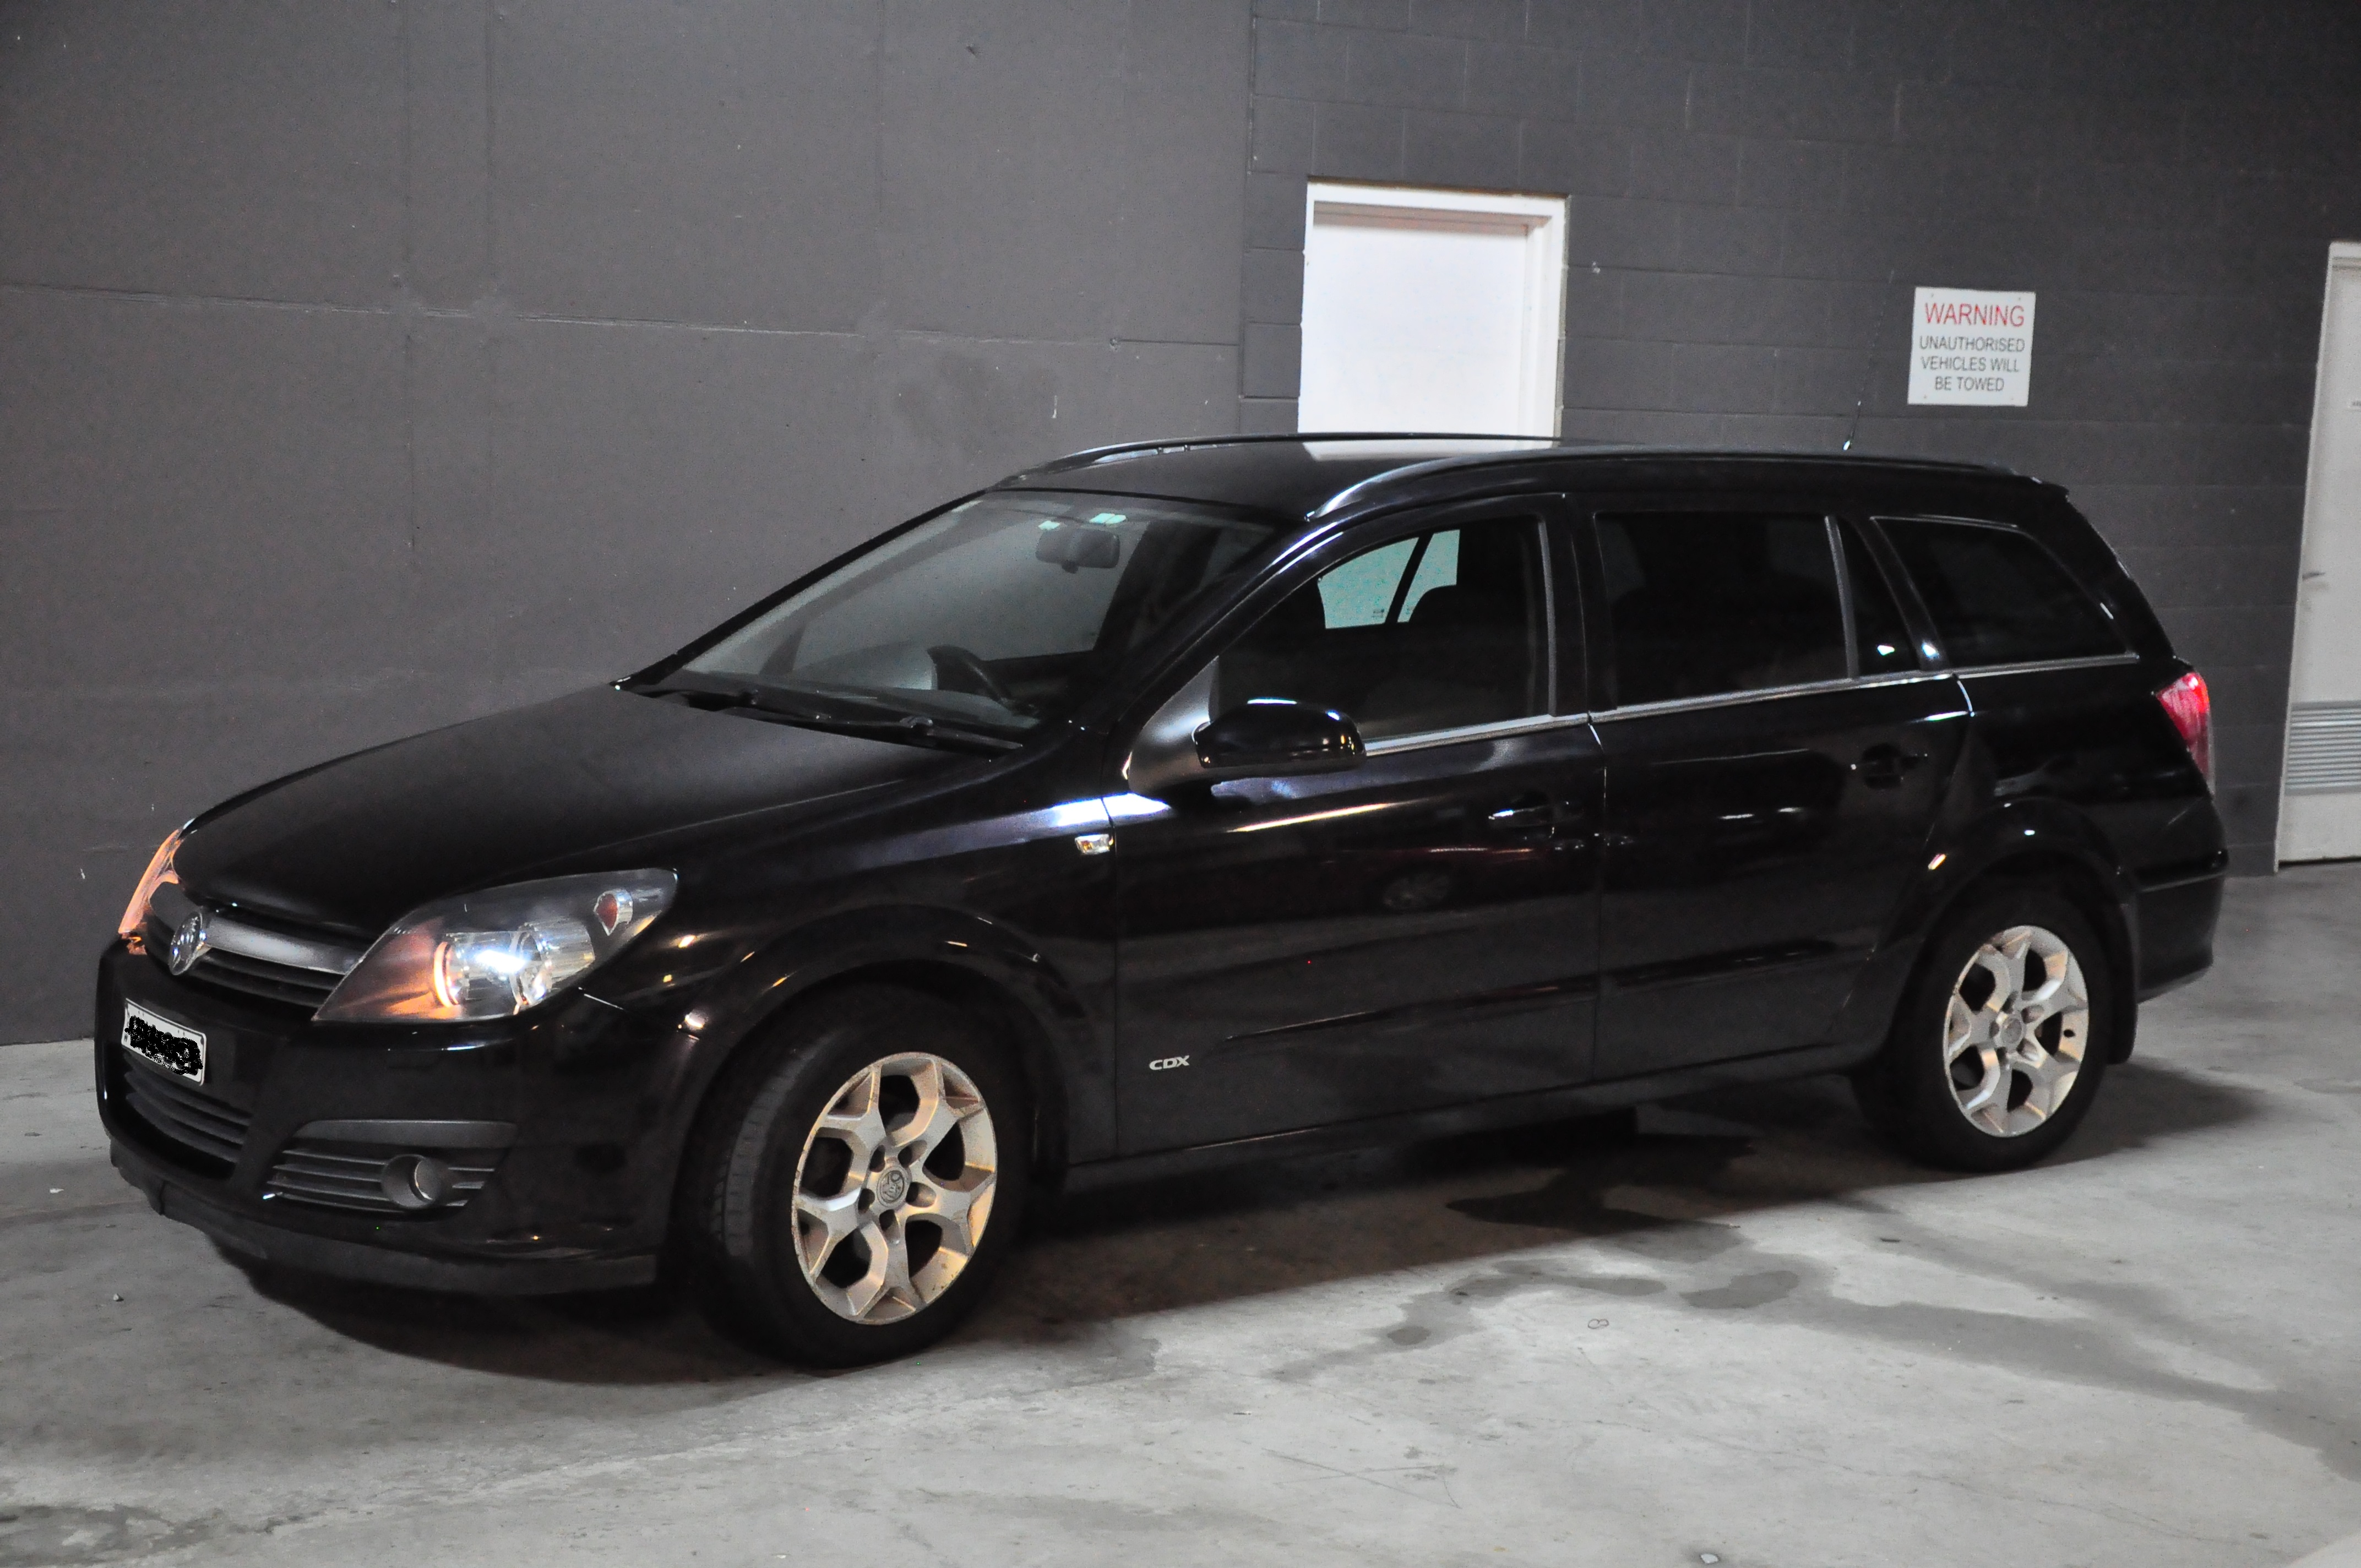 Picture of Krzysztof's 2006 Holden Astra Wagon